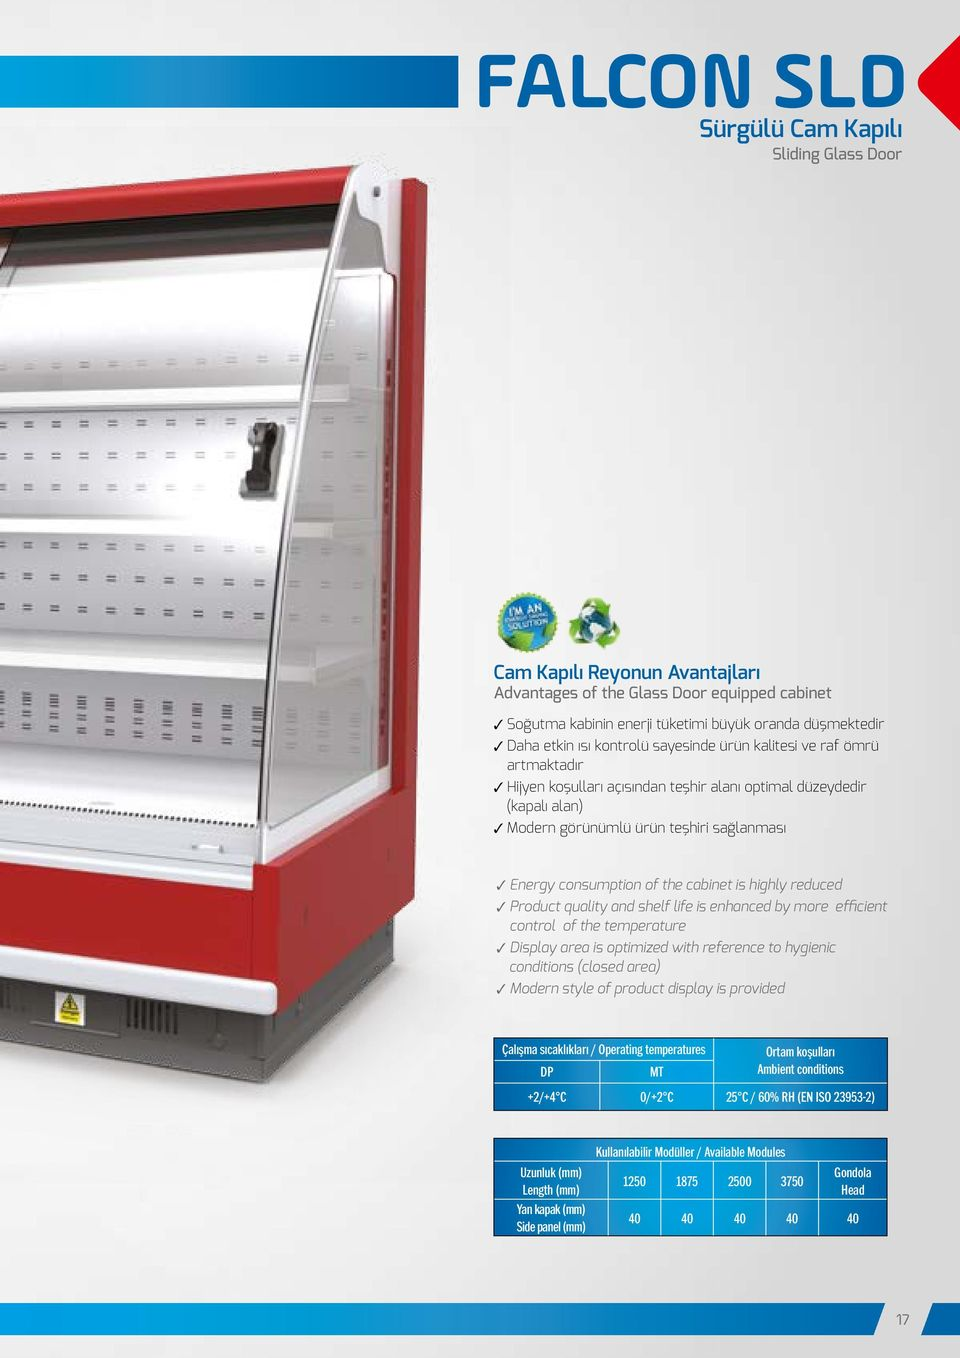 of the cabinet is highly reduced 3 Product quality and shelf life is enhanced by more efficient control of the temperature 3 Display area is optimized with reference to hygienic conditions (closed